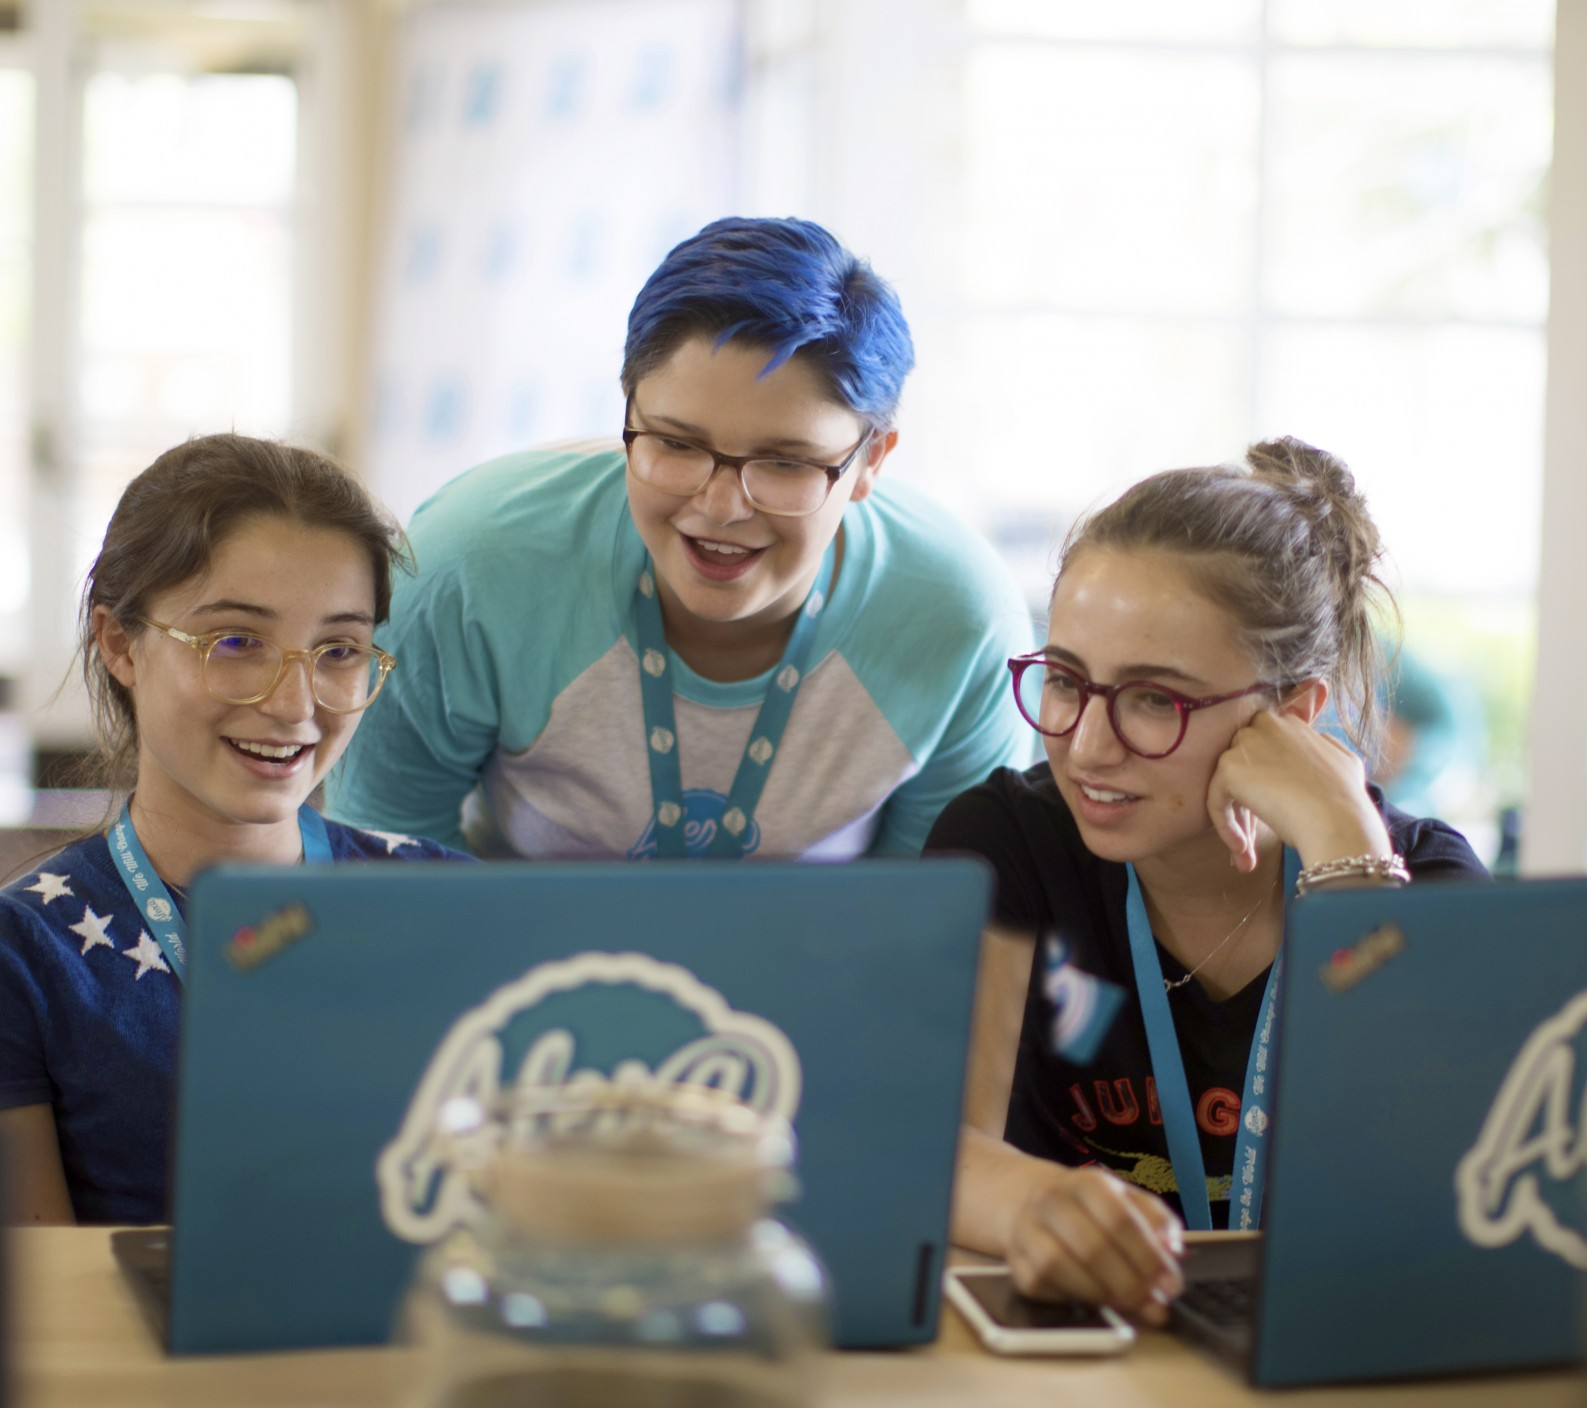 Summer Program - Computer Science | Alexa Cafe: All-Girls STEM Camp | Held at Georgia Tech